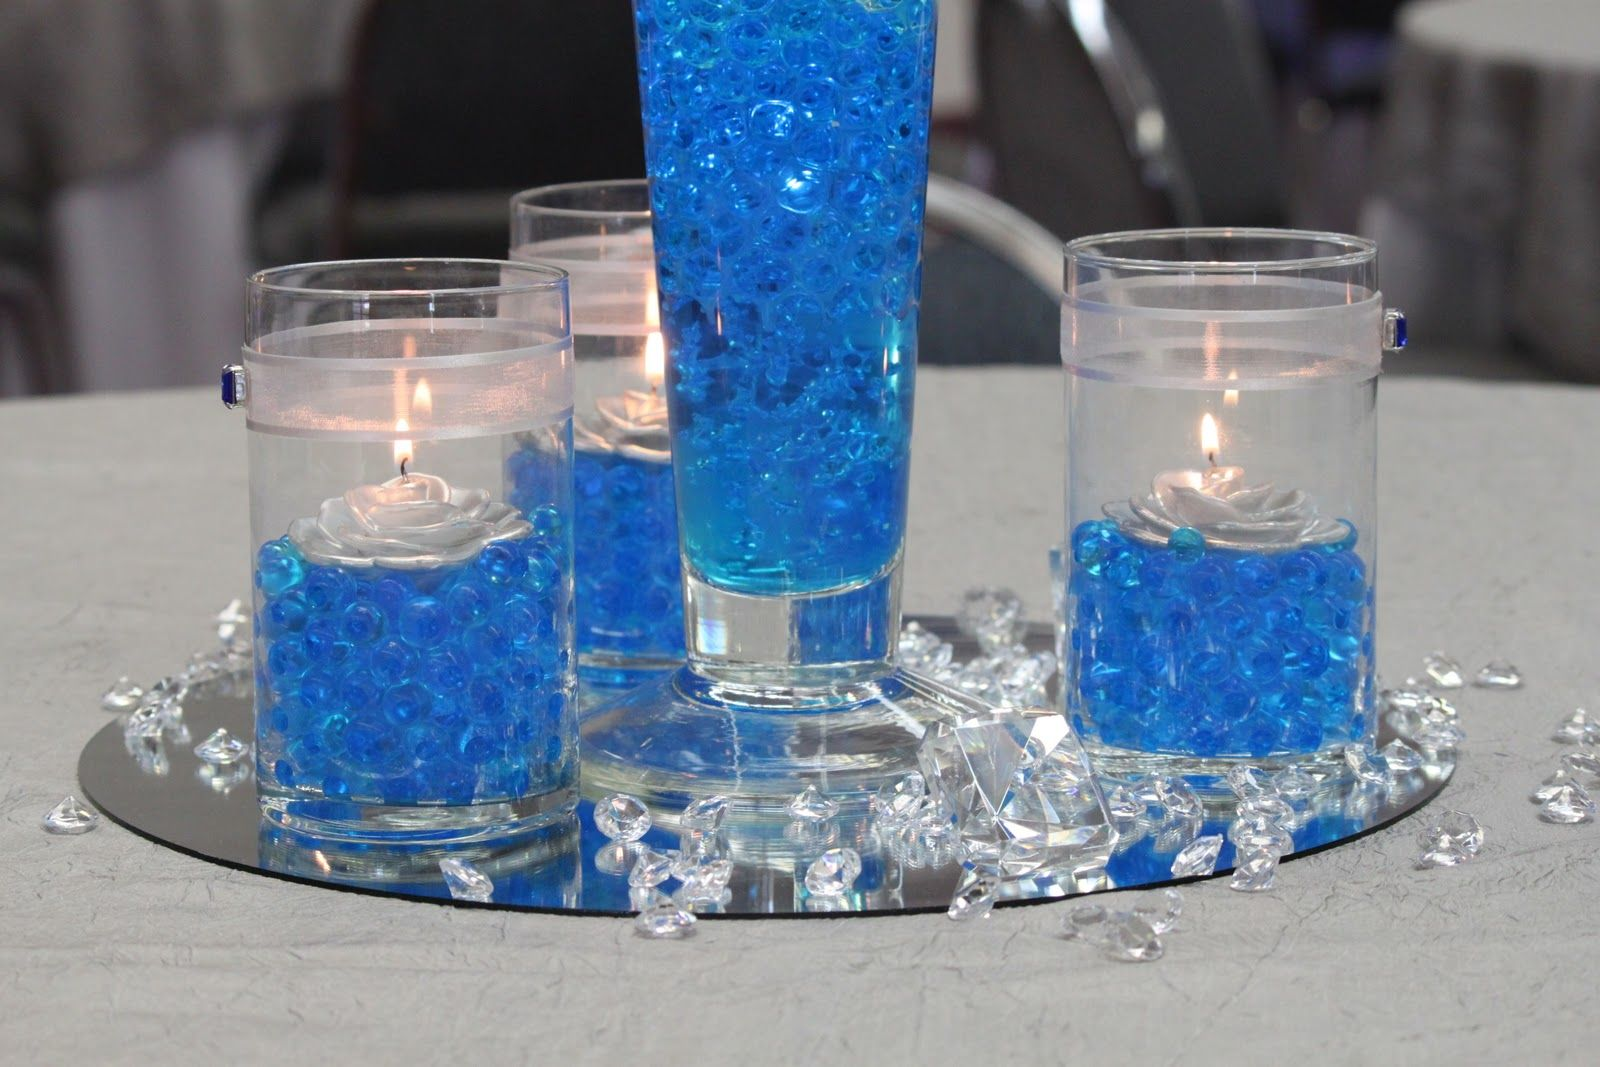 royal blue wedding centerpieces tuesday april 12 2011. Black Bedroom Furniture Sets. Home Design Ideas